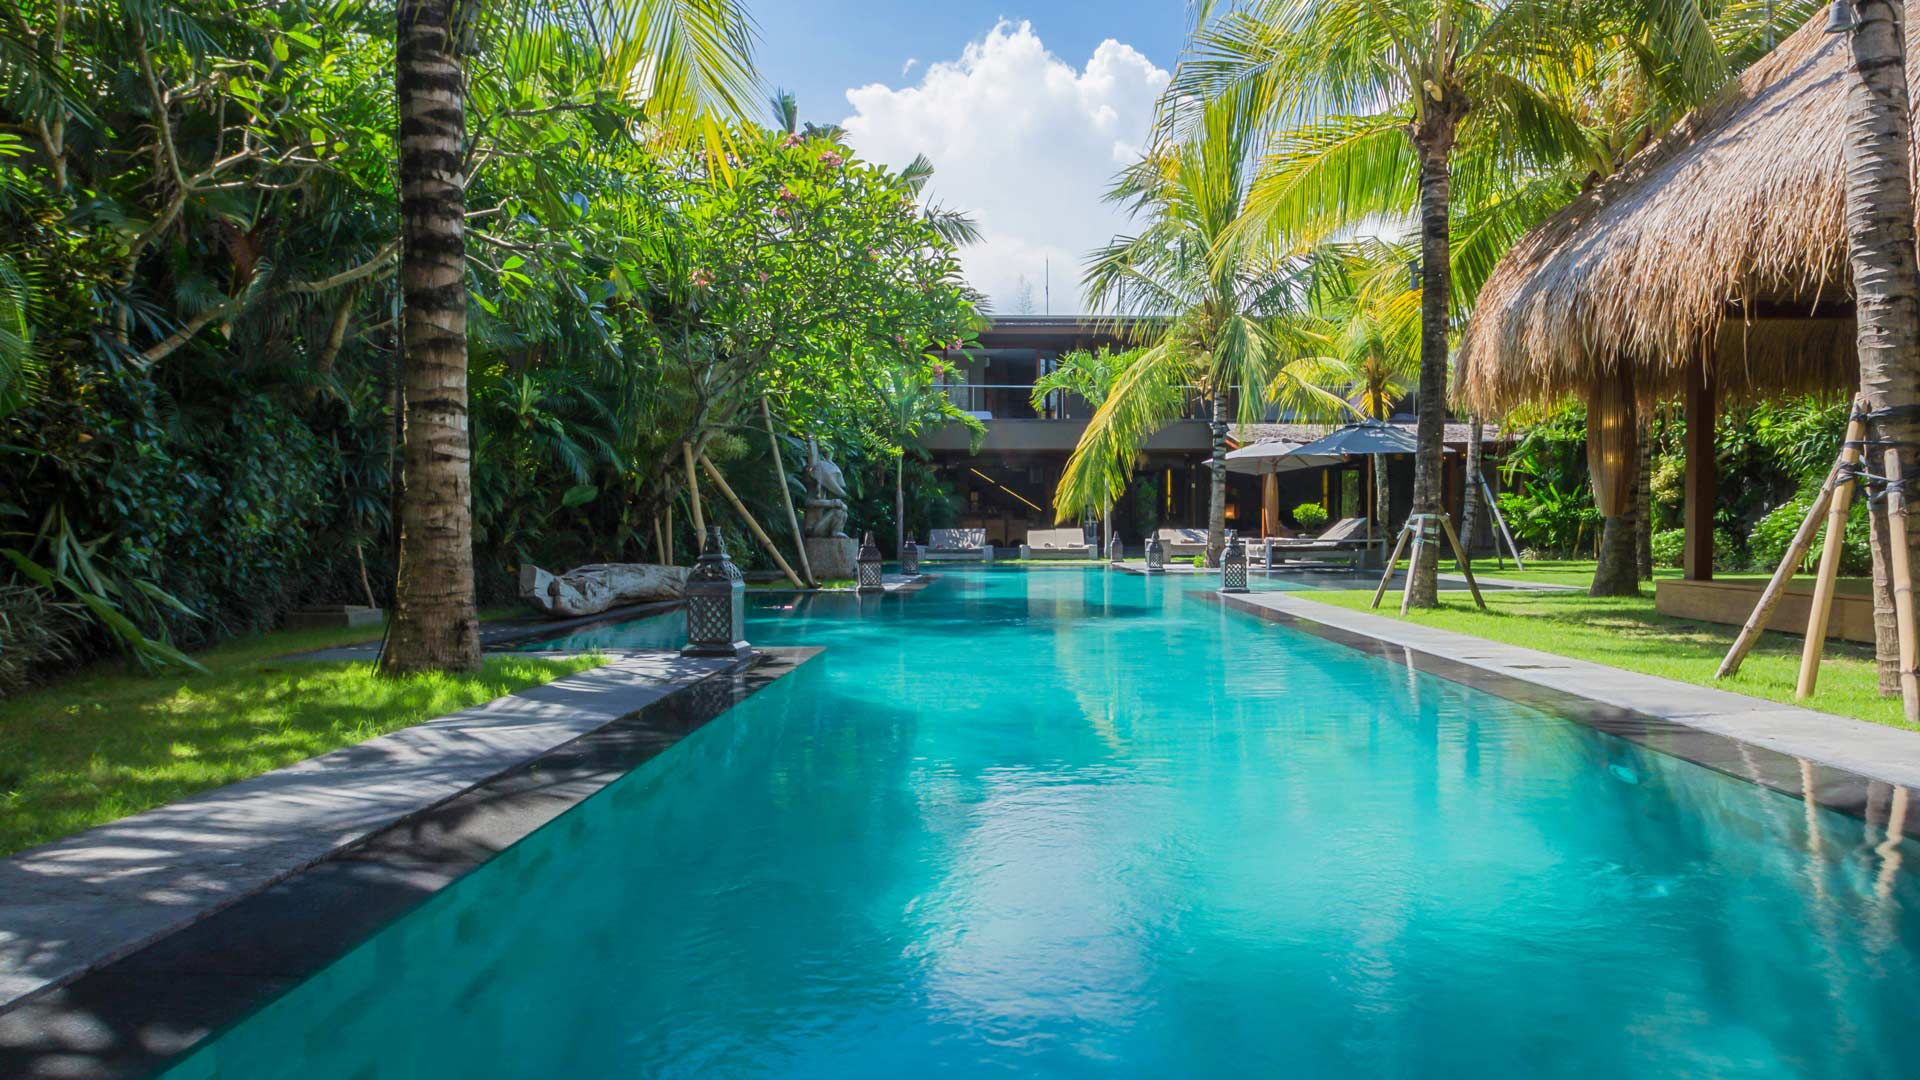 4 Bedrooms For Rent Bali Villas Amp Seminyak Villas For Rent Best Price Guarantee